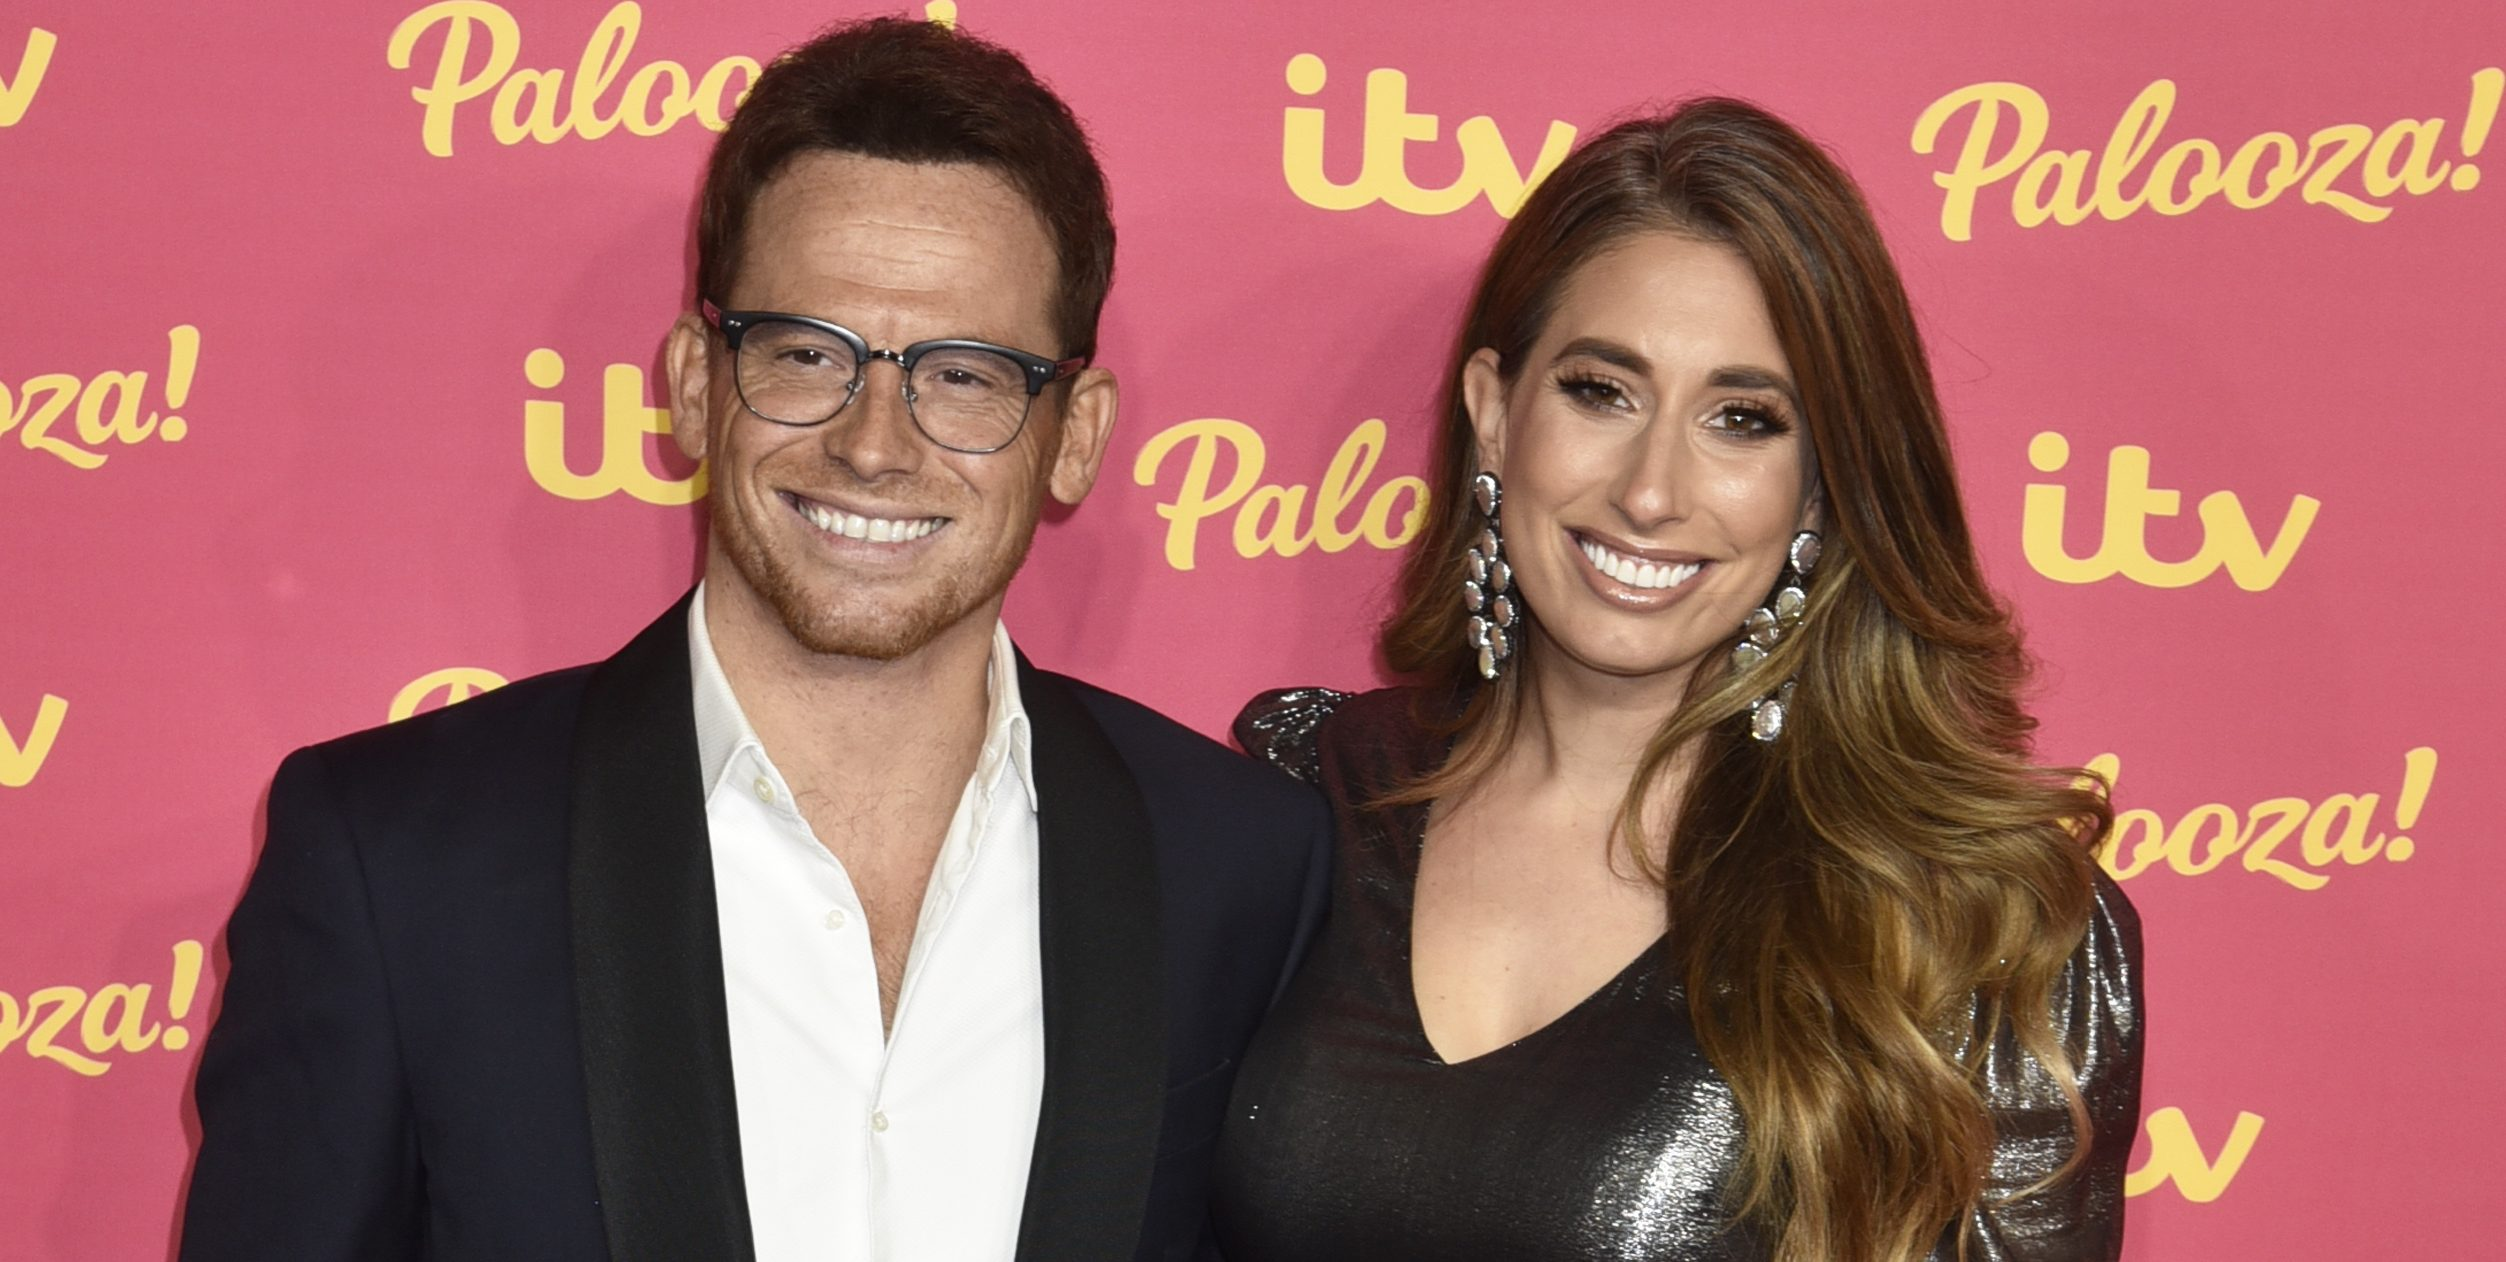 Dancing On Ice fans are convinced Joe Swash and Stacey Solomon have secretly tied the knot